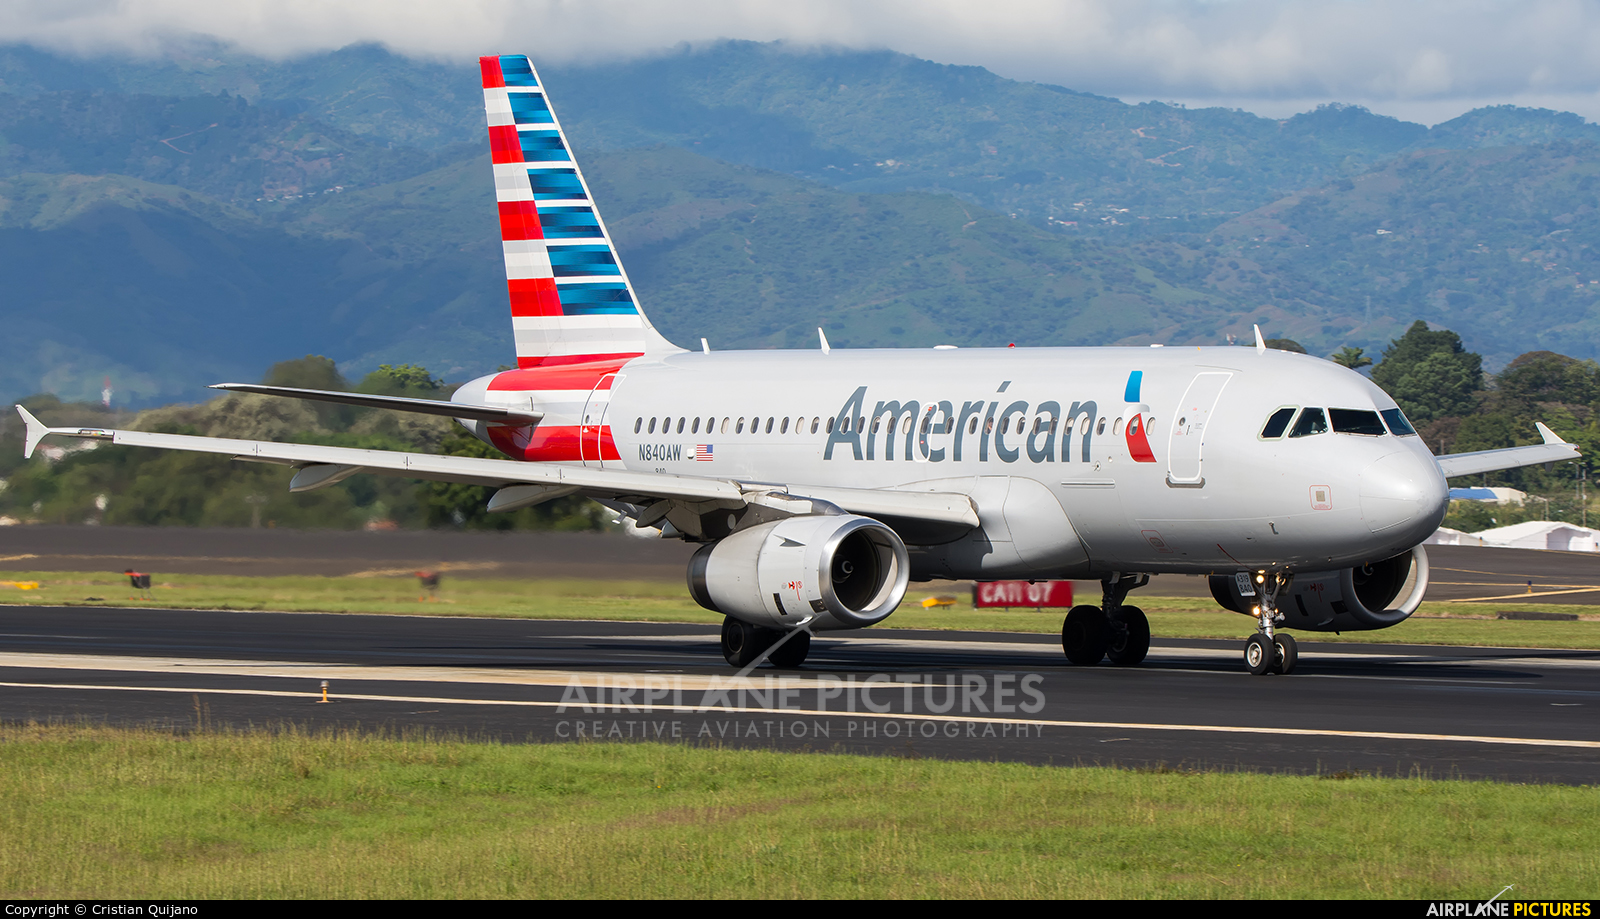 American Airlines N840AW aircraft at San Jose - Juan Santamaría Intl